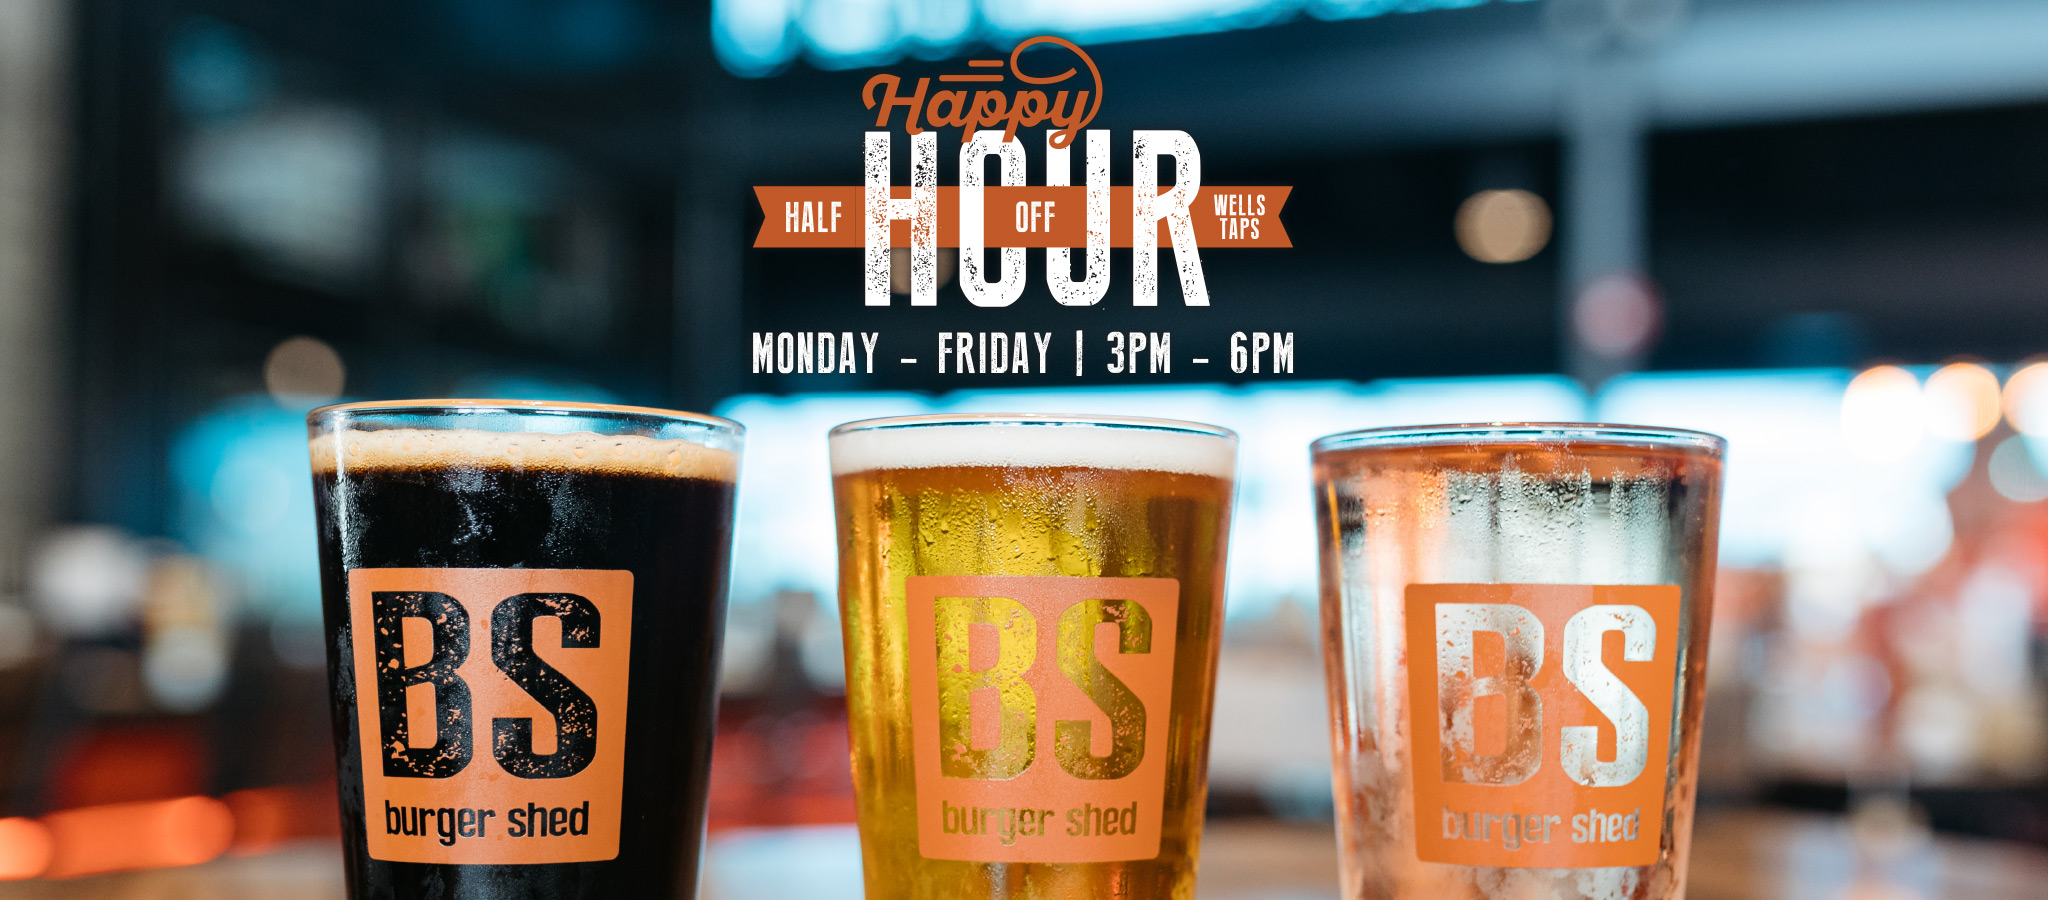 Burger Shed Happy Hour